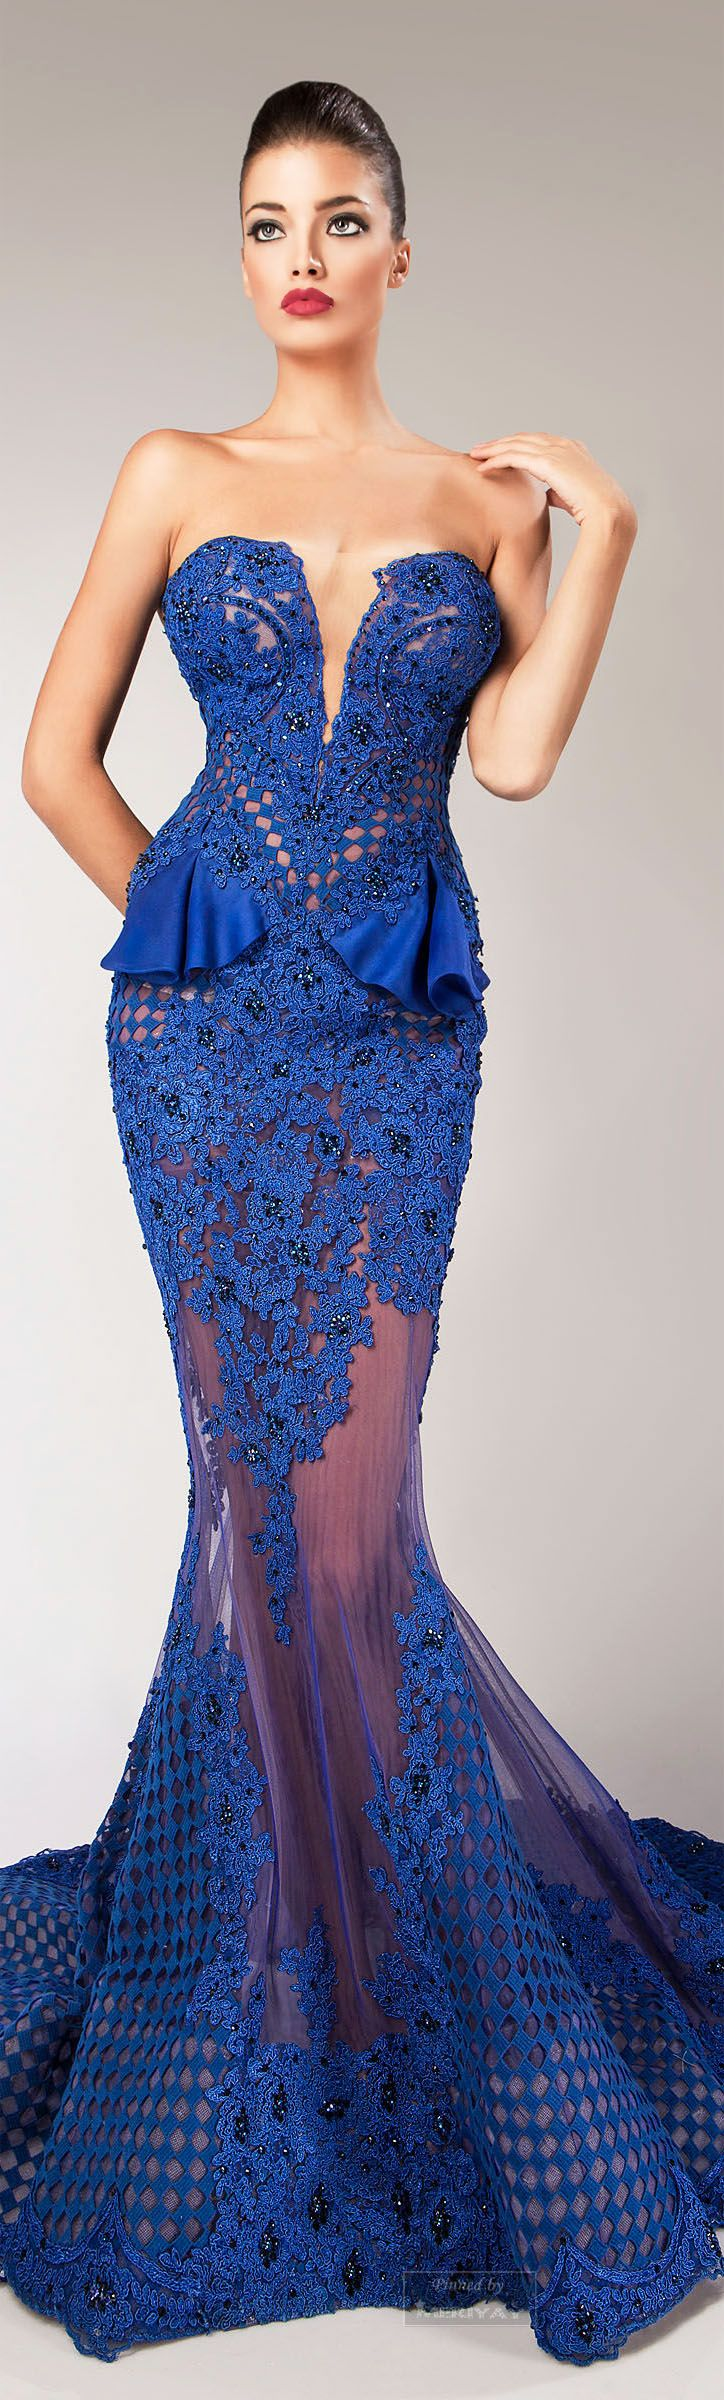 Hanna Toumajean I would like to add flowers to your stunning gown. A wrist braclett with blue Vanda Orchid and a couple of deep blue Gentians.